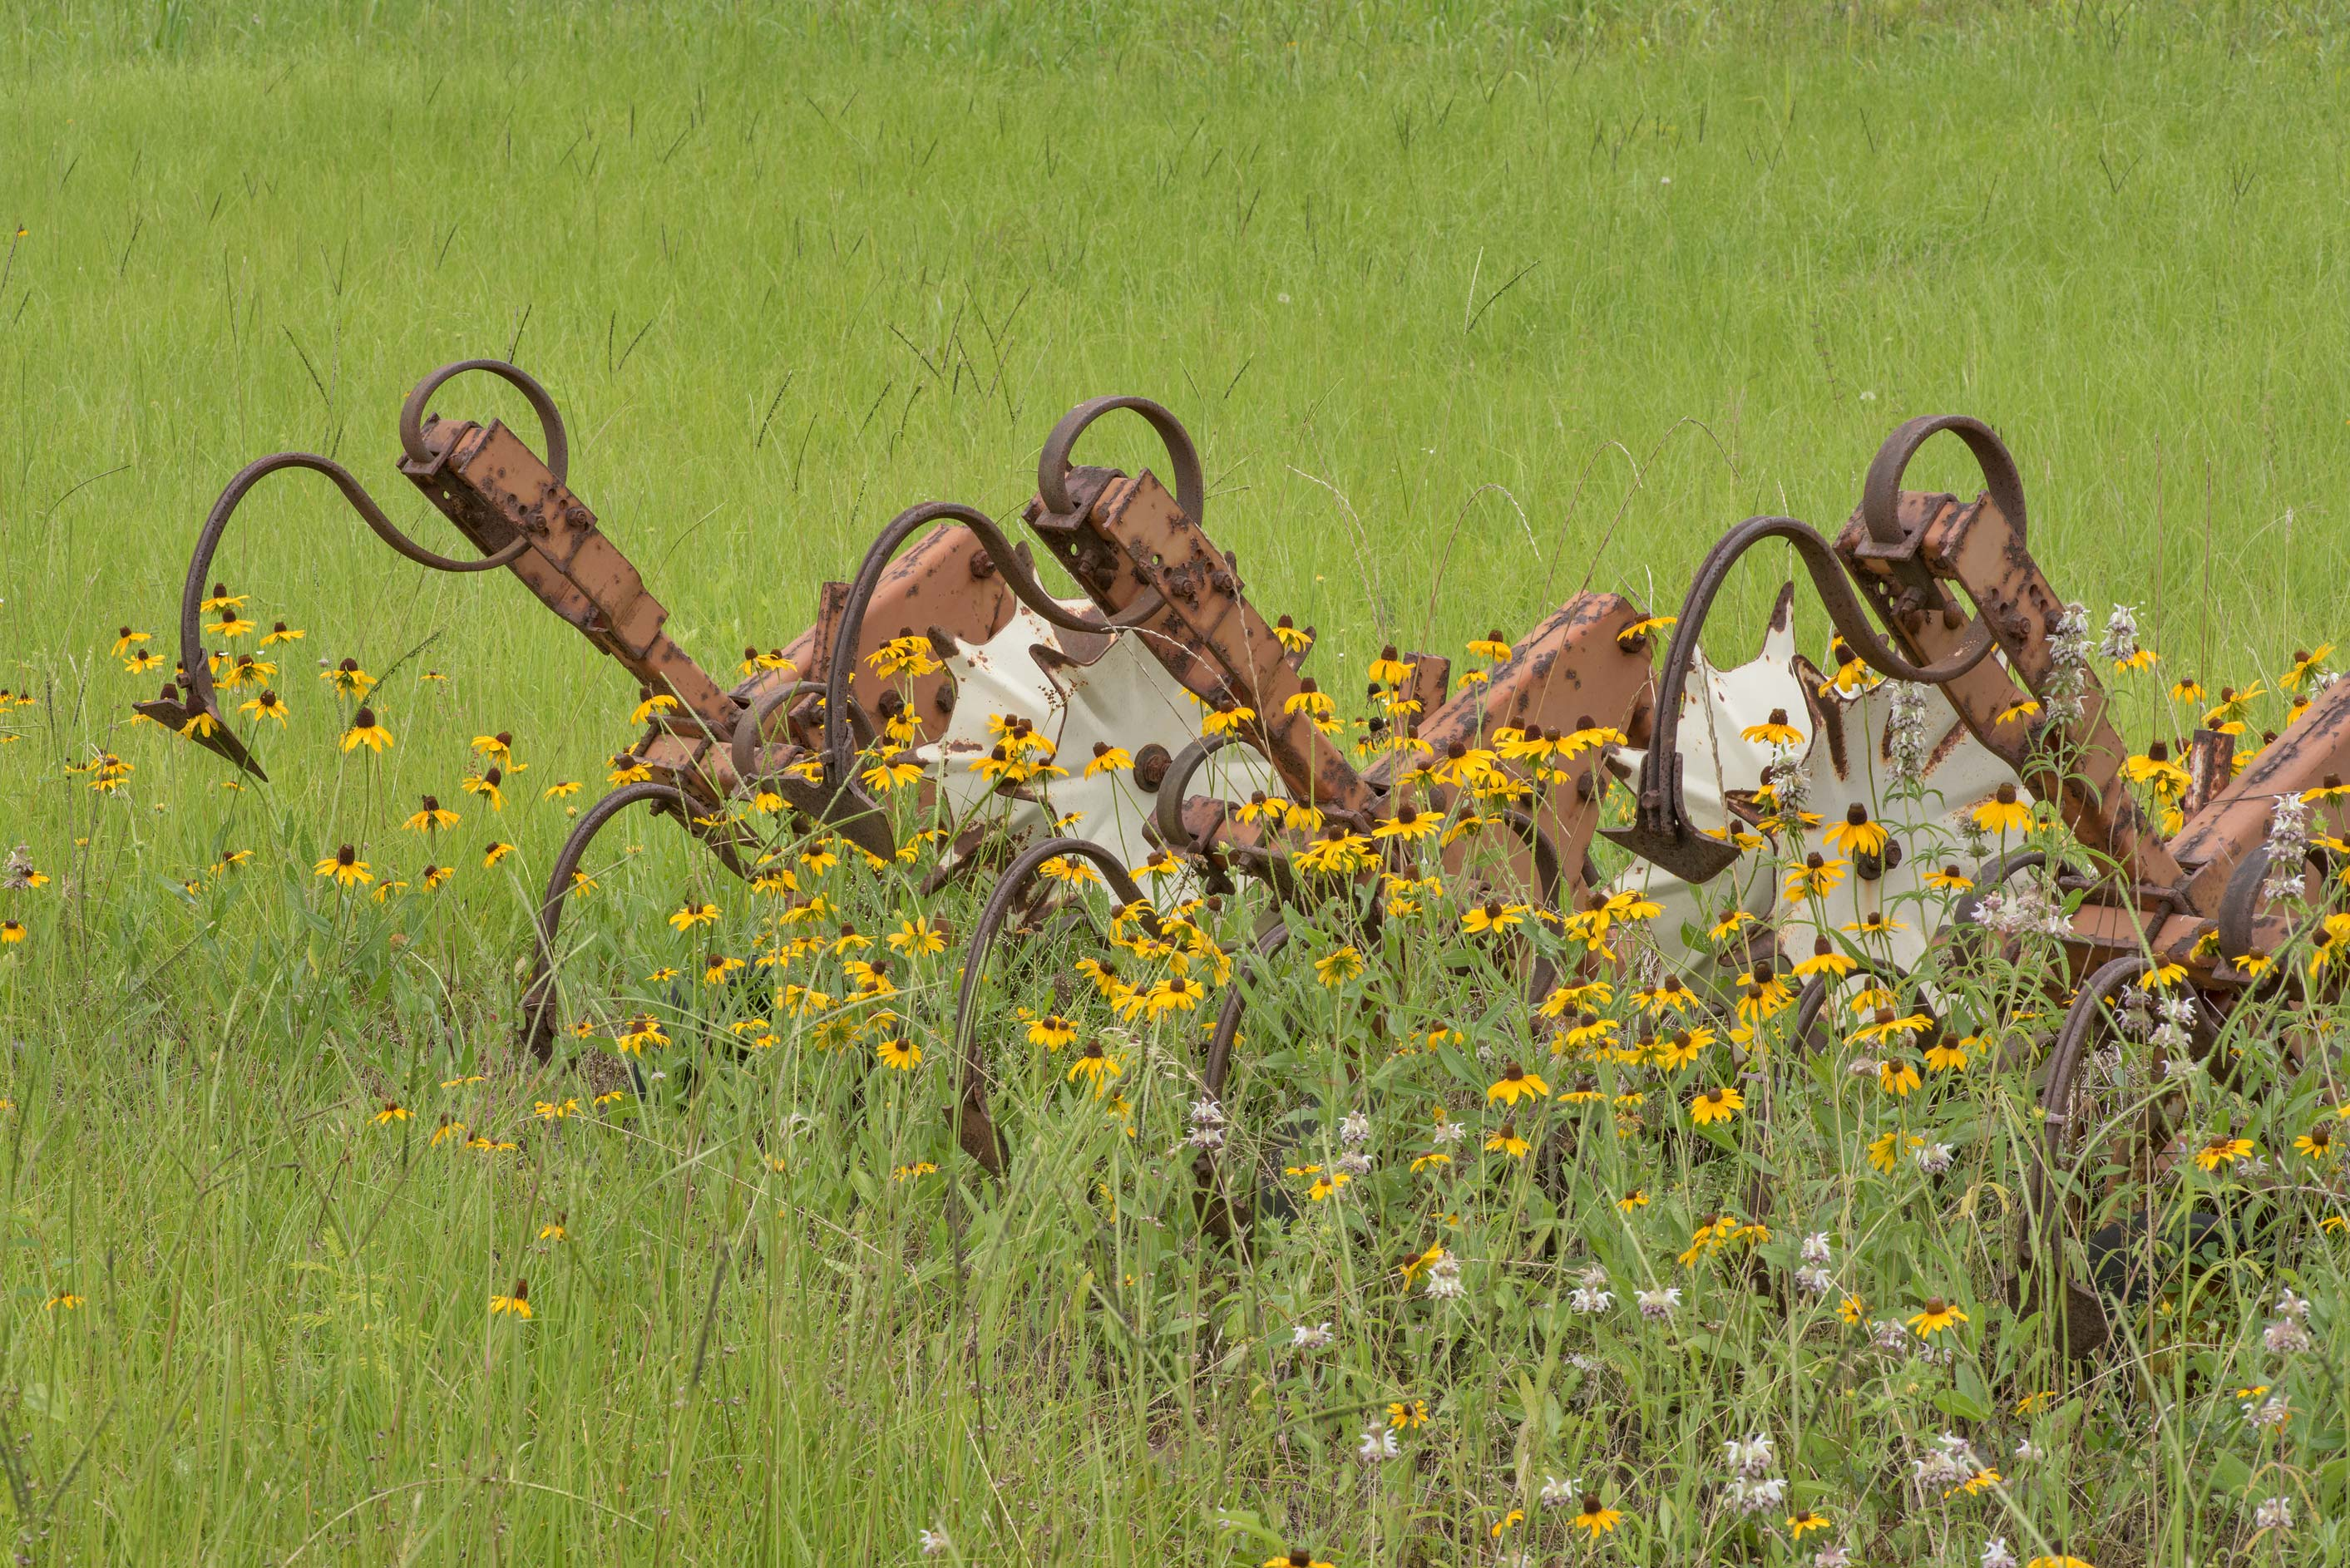 Black-eyed susan flowers and rusty farm machinery...at 10655 FM 149 in Richards. Texas